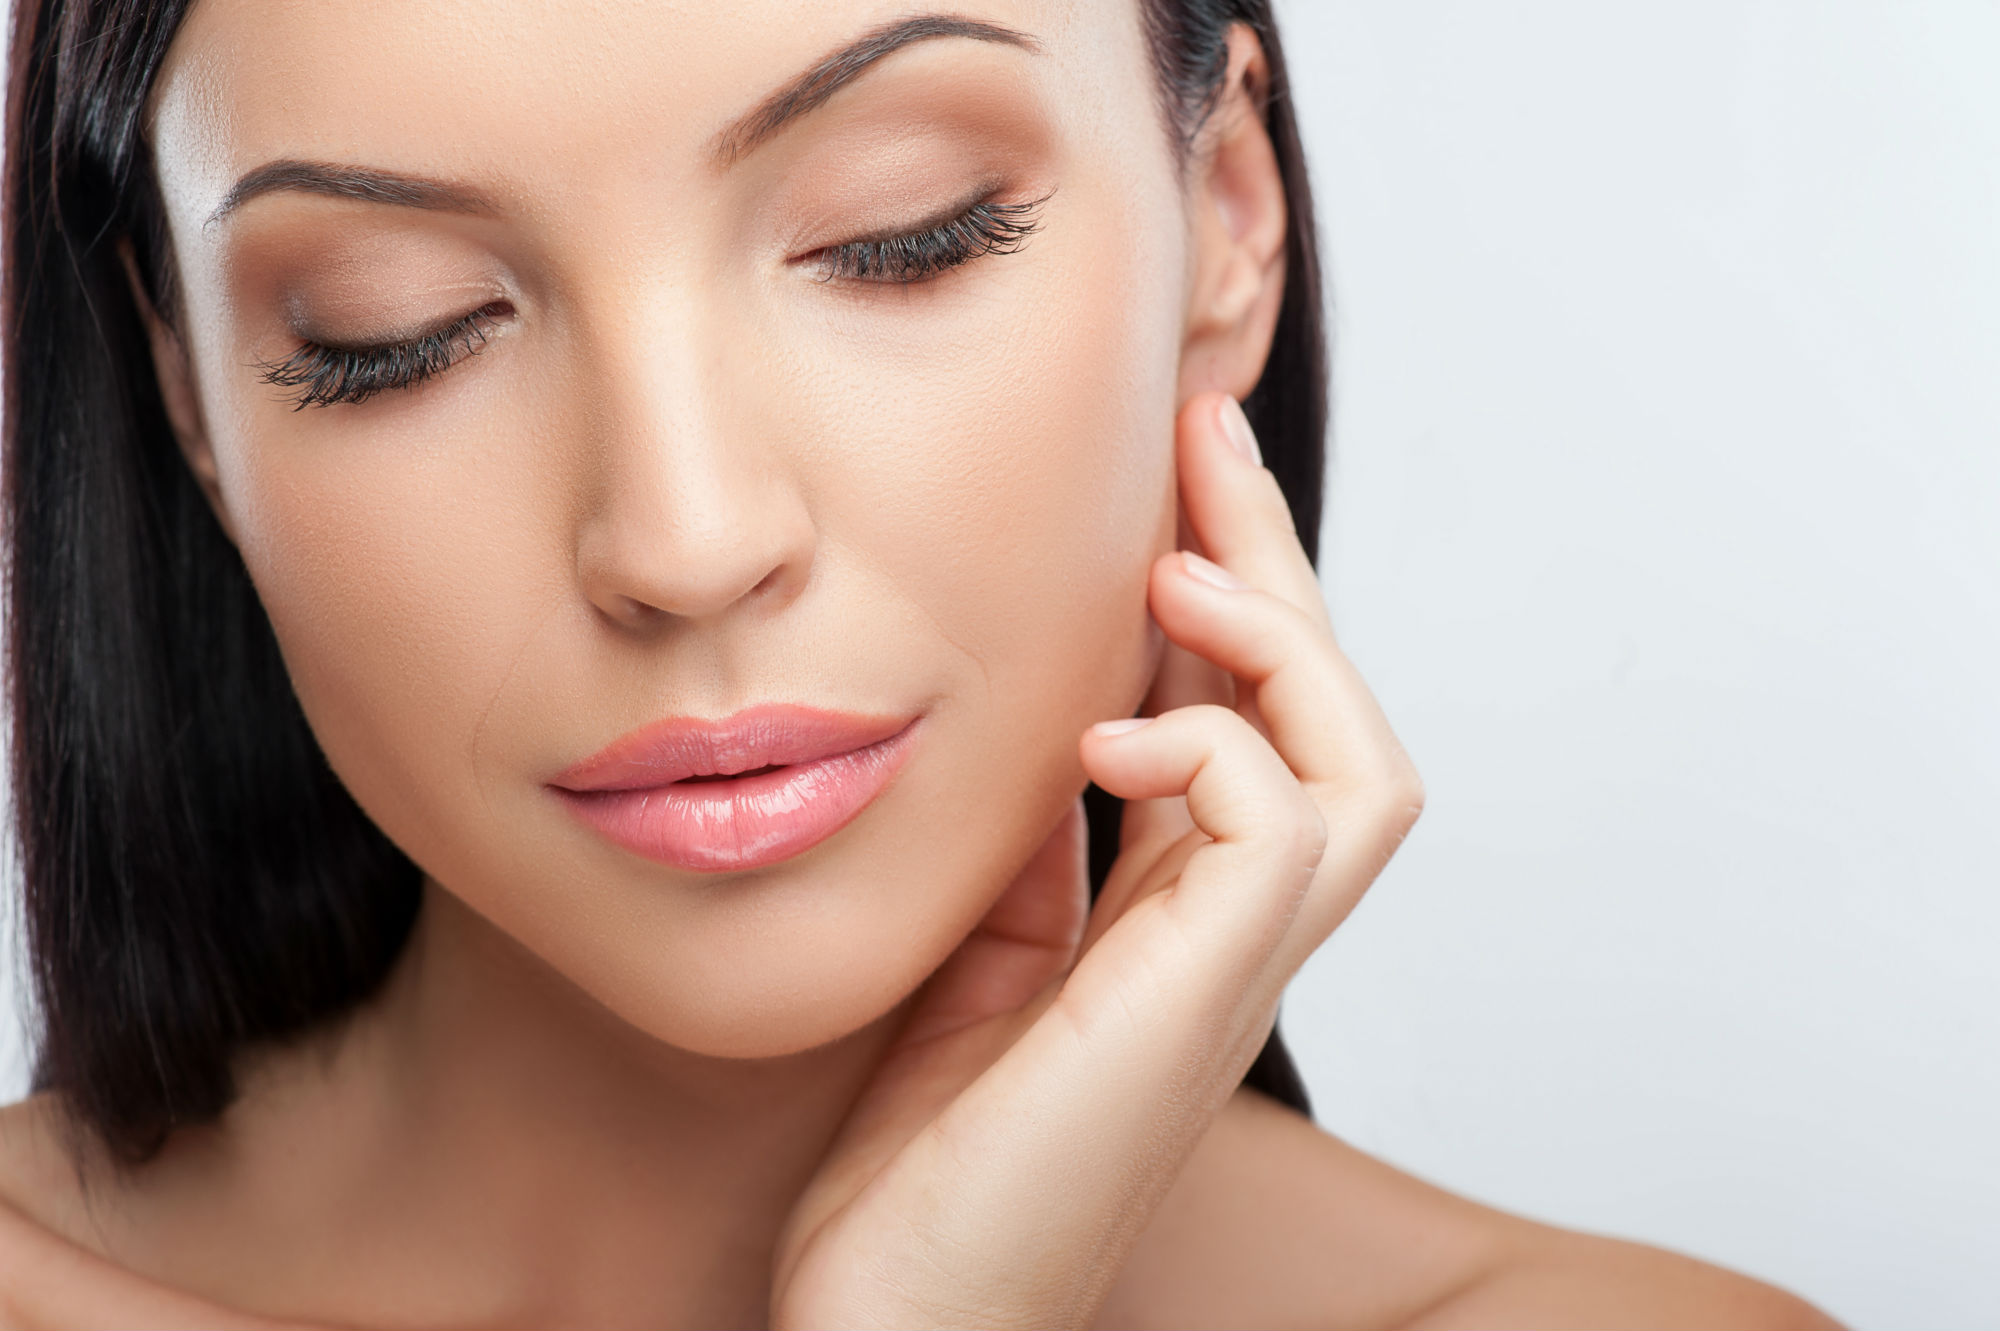 slimmer face with botox jaw reduction in singapore